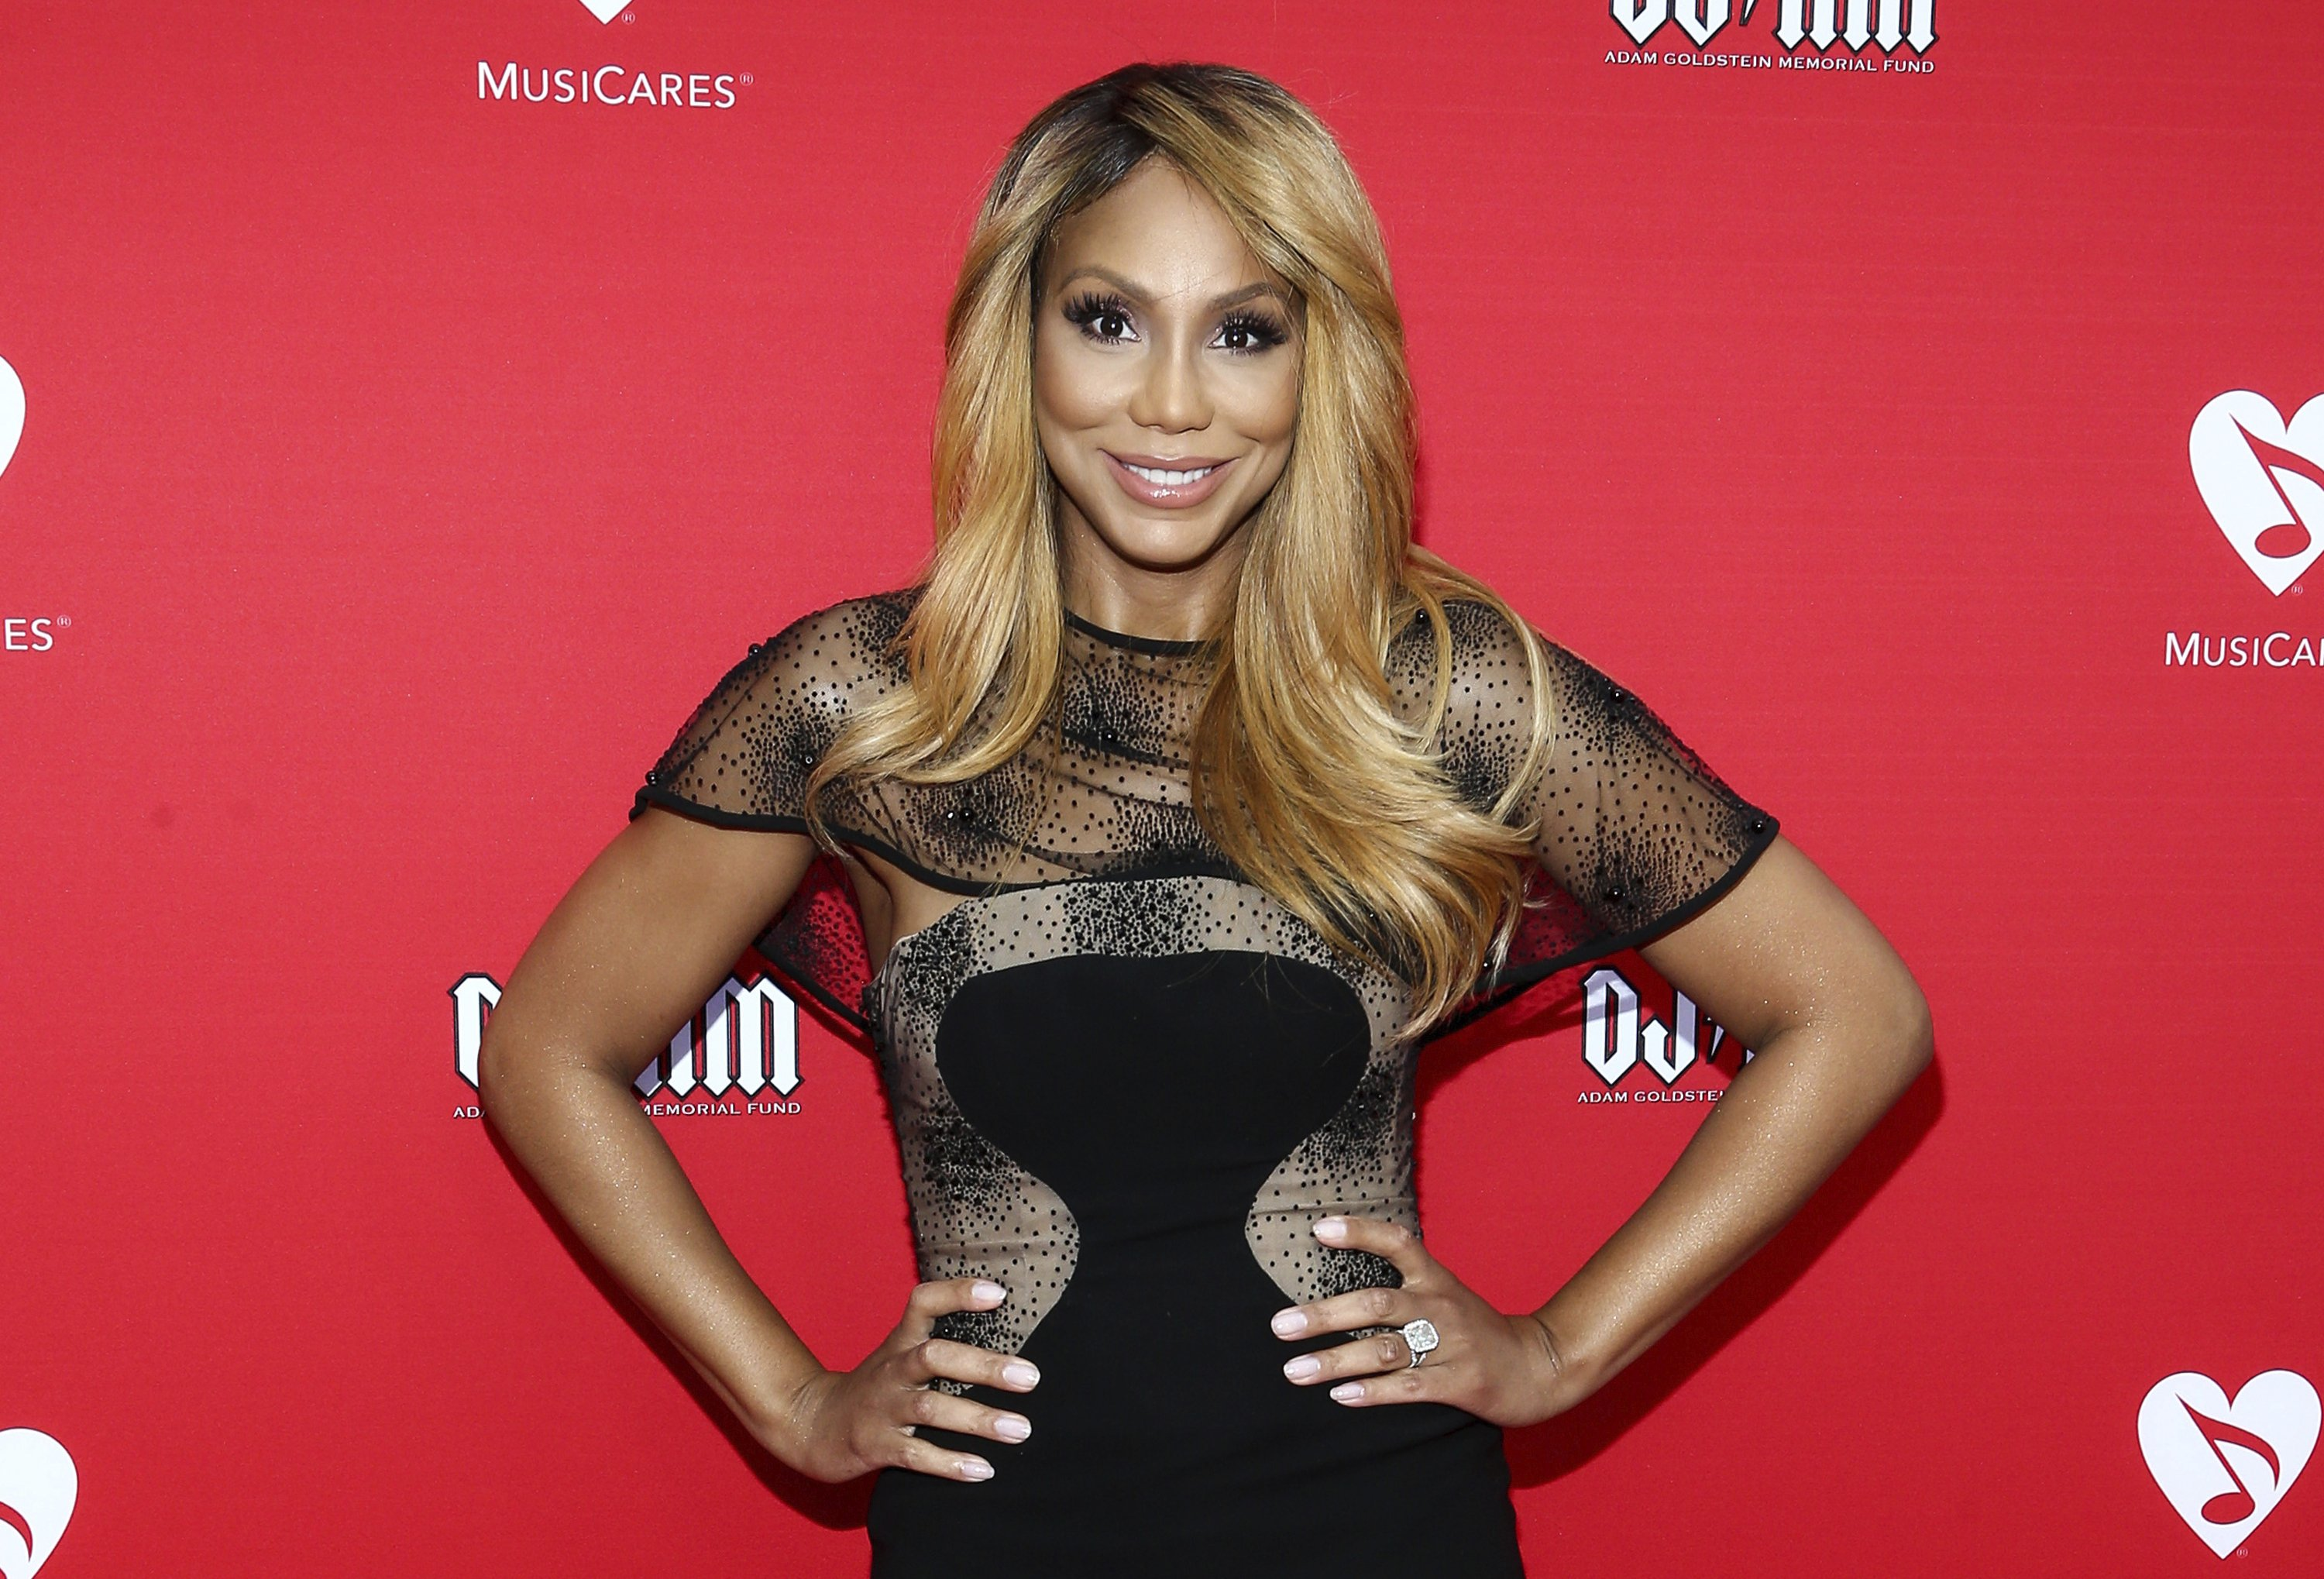 Uh-Oh: Tamar Braxton's Boyfriend Files for Domestic Violence Restraining Order Against Her